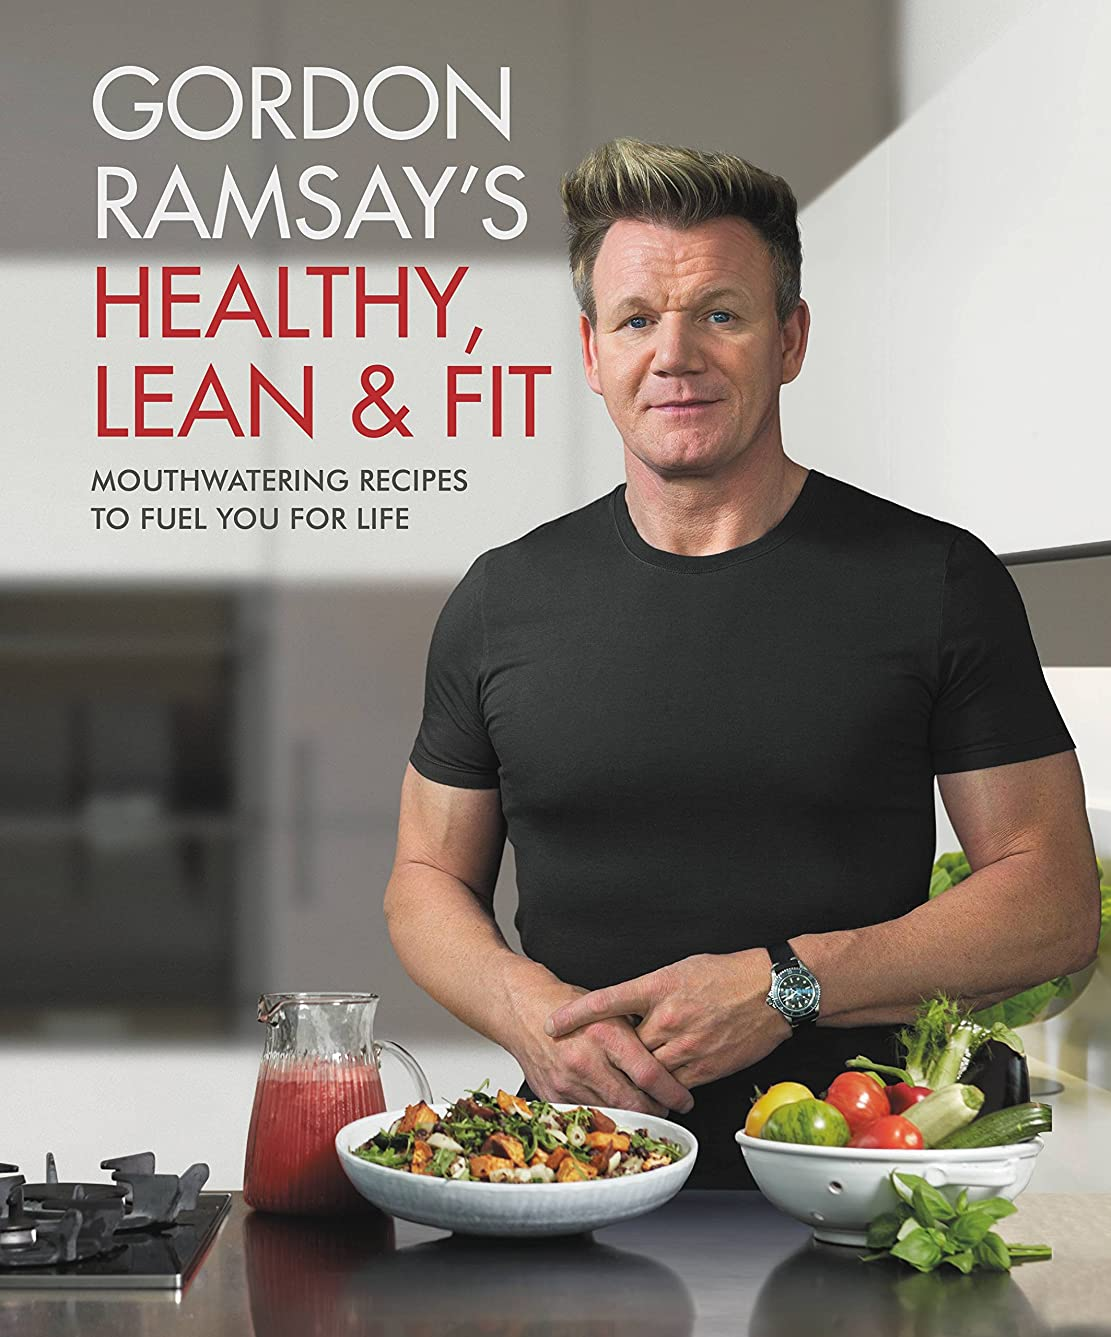 歩く弁護人亜熱帯Gordon Ramsay's Healthy, Lean & Fit: Mouthwatering Recipes to Fuel You for Life (English Edition)